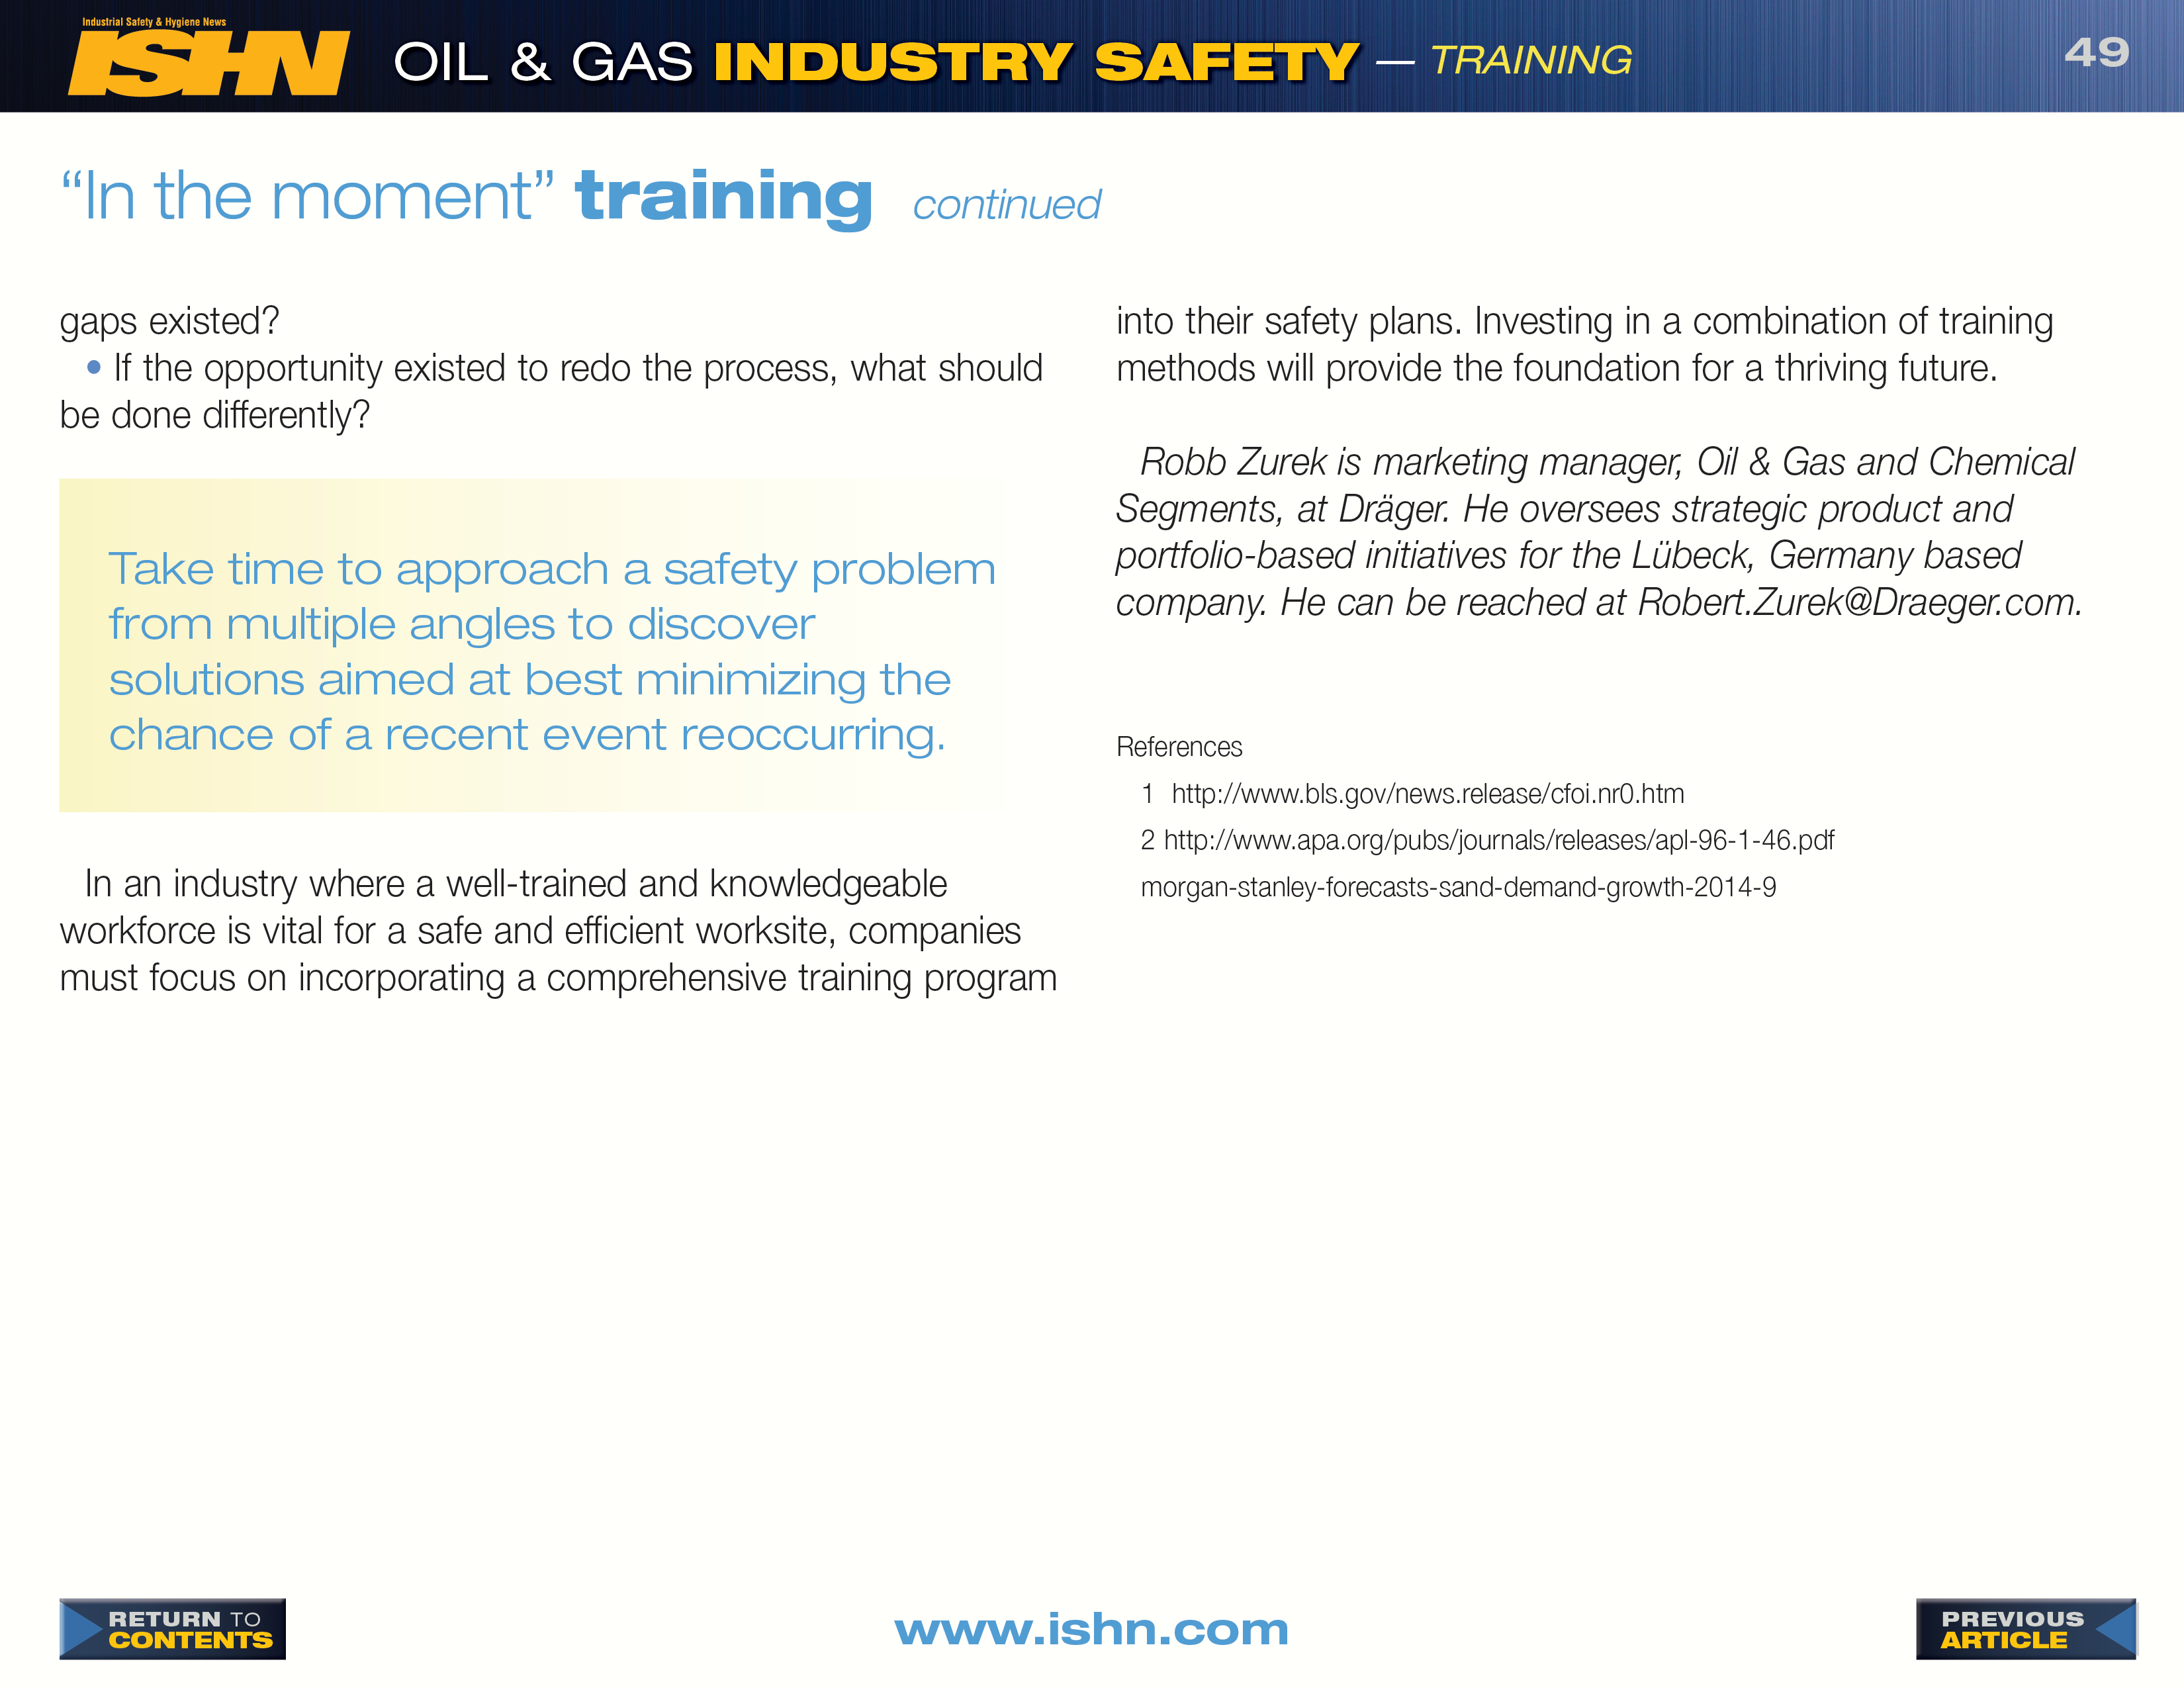 ISHN Oil & Gas Industry Safety - Volume 3